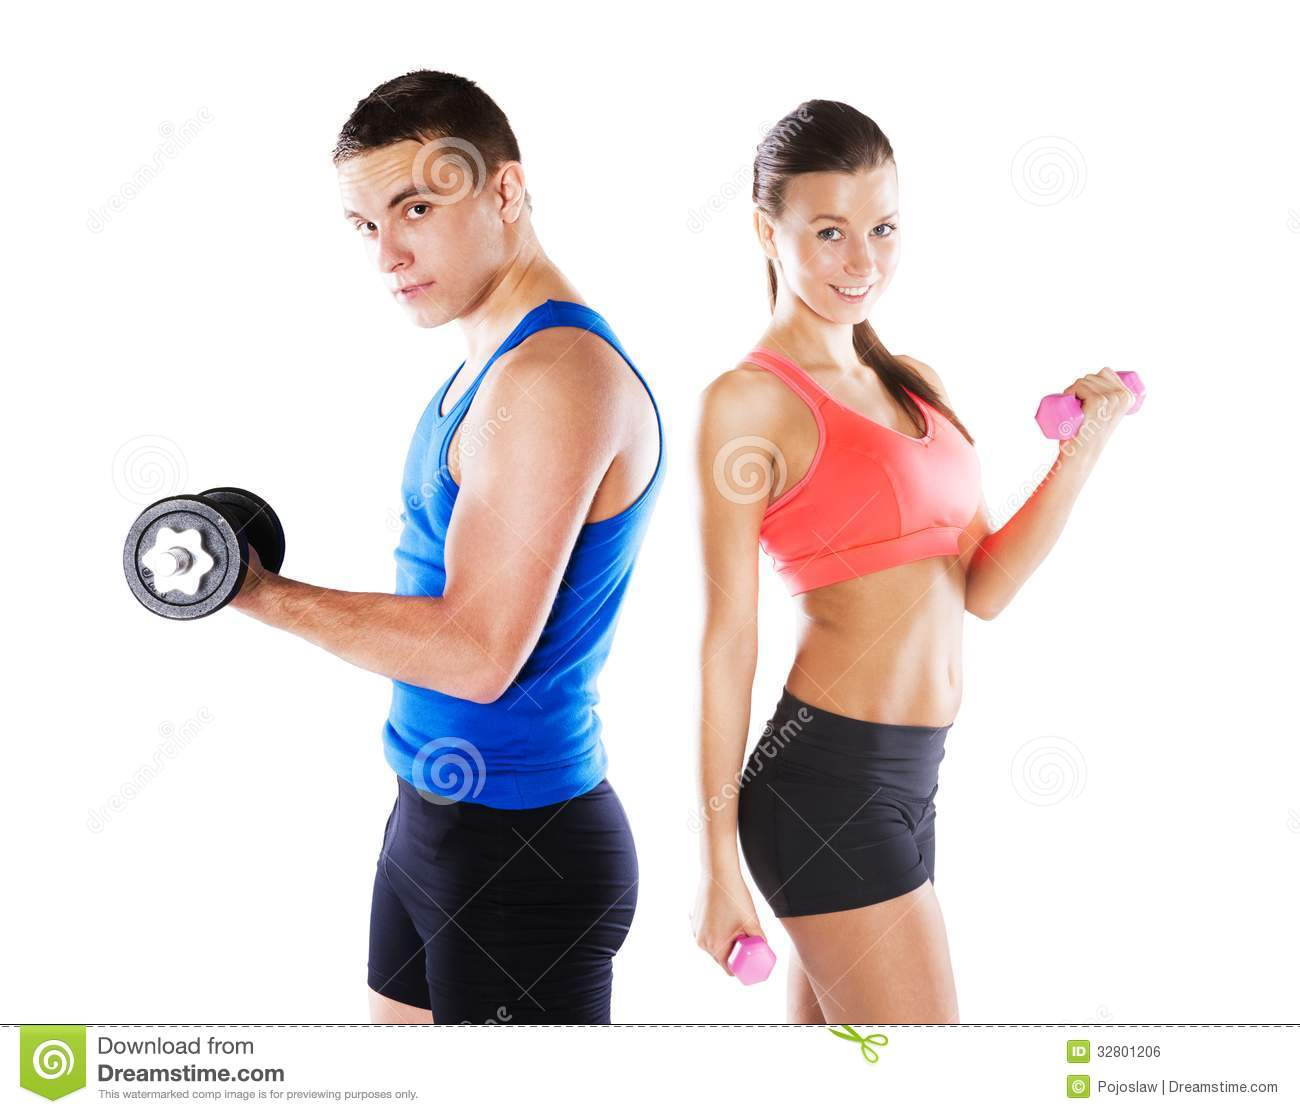 Exercise Fitness: Athletic Man And Woman Stock Photo. Image Of Muscle, Adult